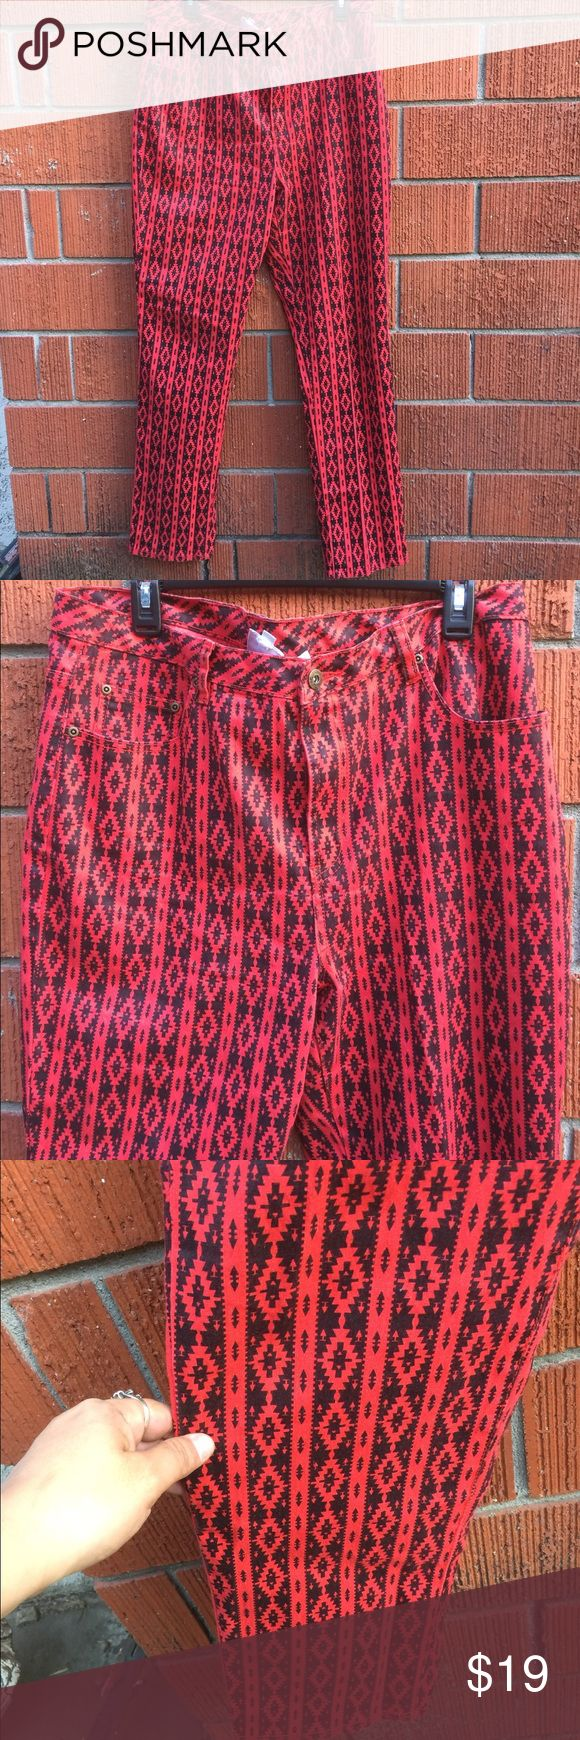 Red and black Aztec pants. TALL length Good condition diane Gilman Pants